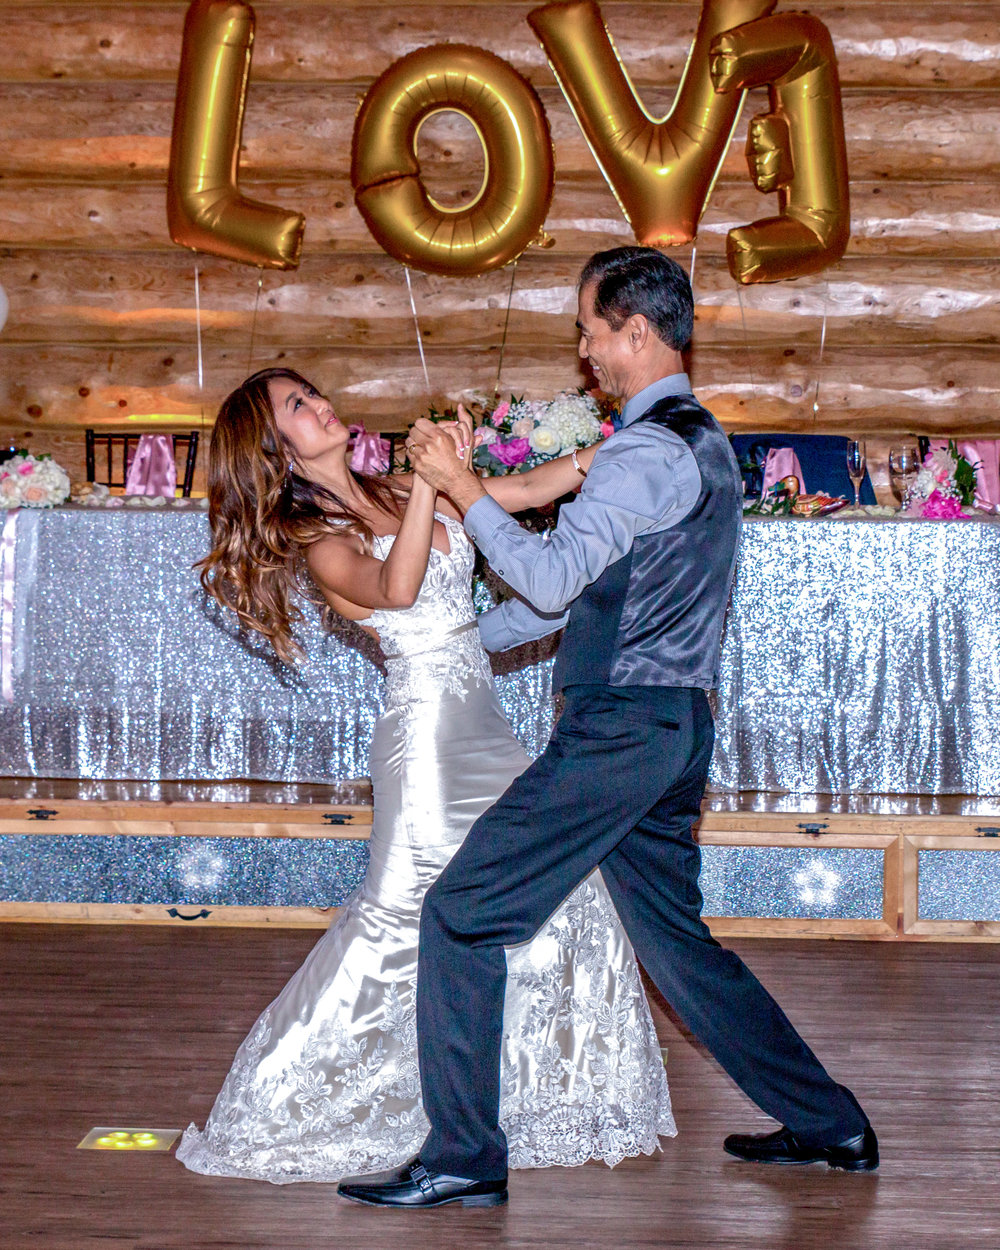 Minnesota Wedding at Glenhaven, outdoor ceremony, Fab Weddings, dance with dad love letters in the background